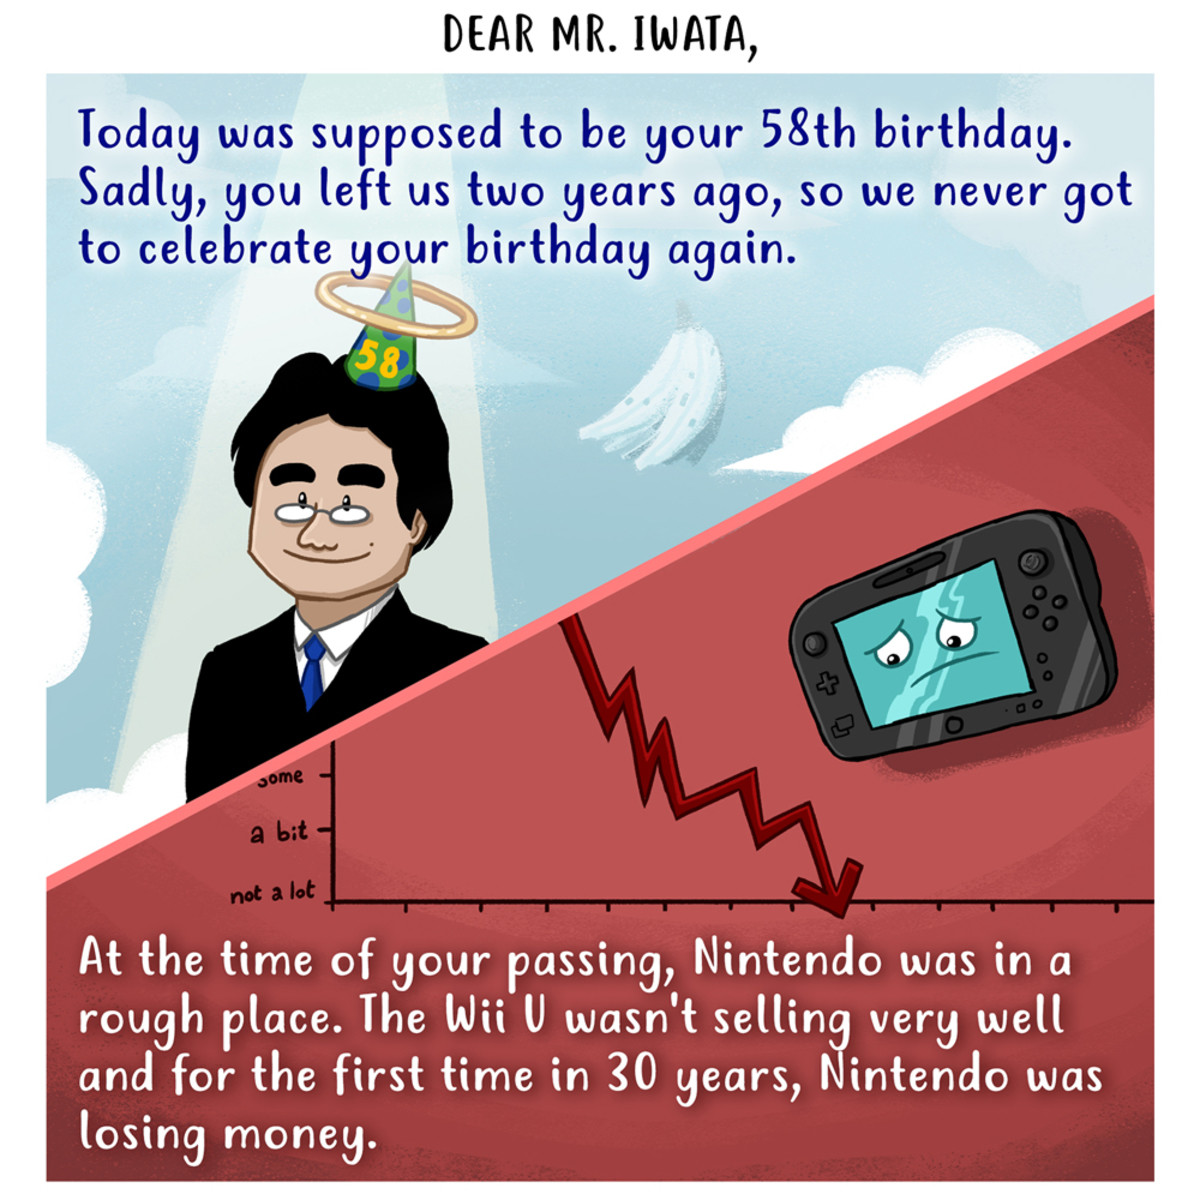 Happy birthday and thank you, Mr. Iwata. Today, December 6th, Satoru Iwata - president of Nintendo - was supposed to celebrate his birthday. I'm still sad he ne